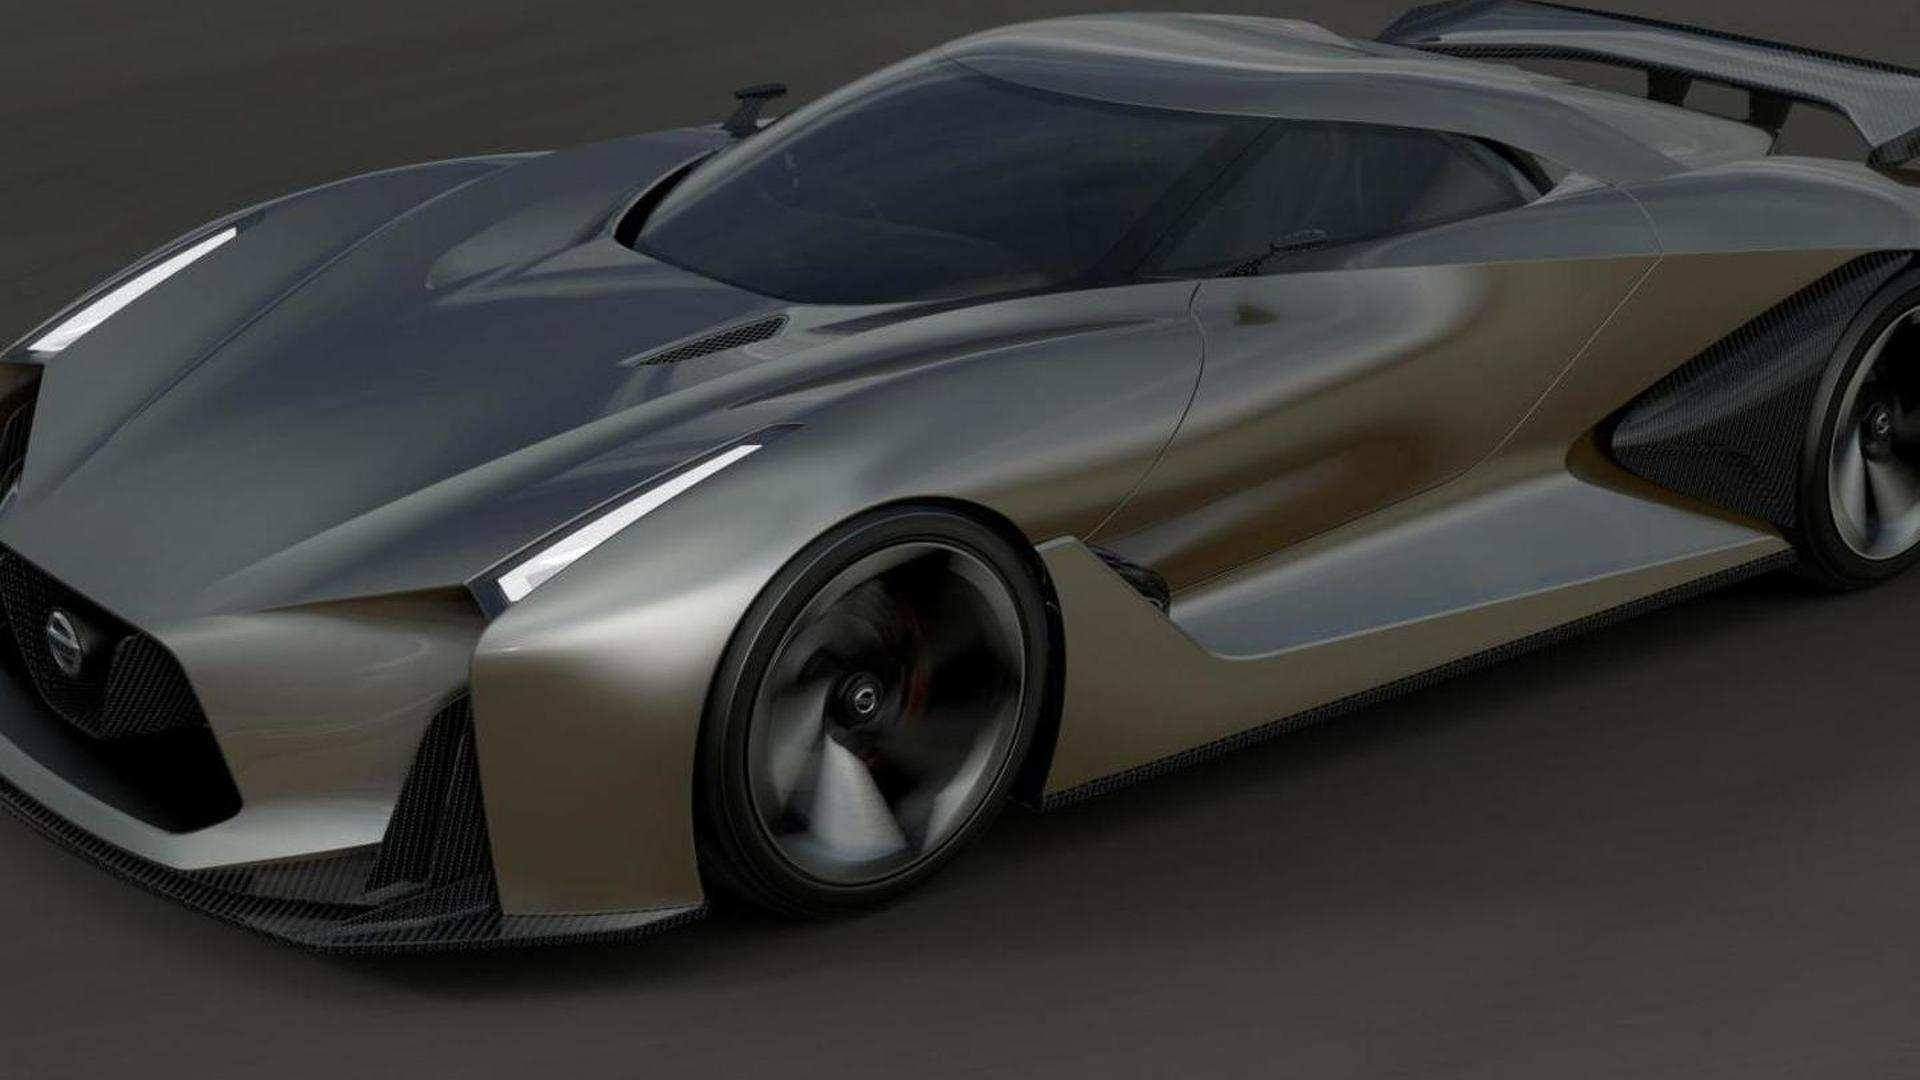 41 All New 2020 Nissan Gran Turismo Interior